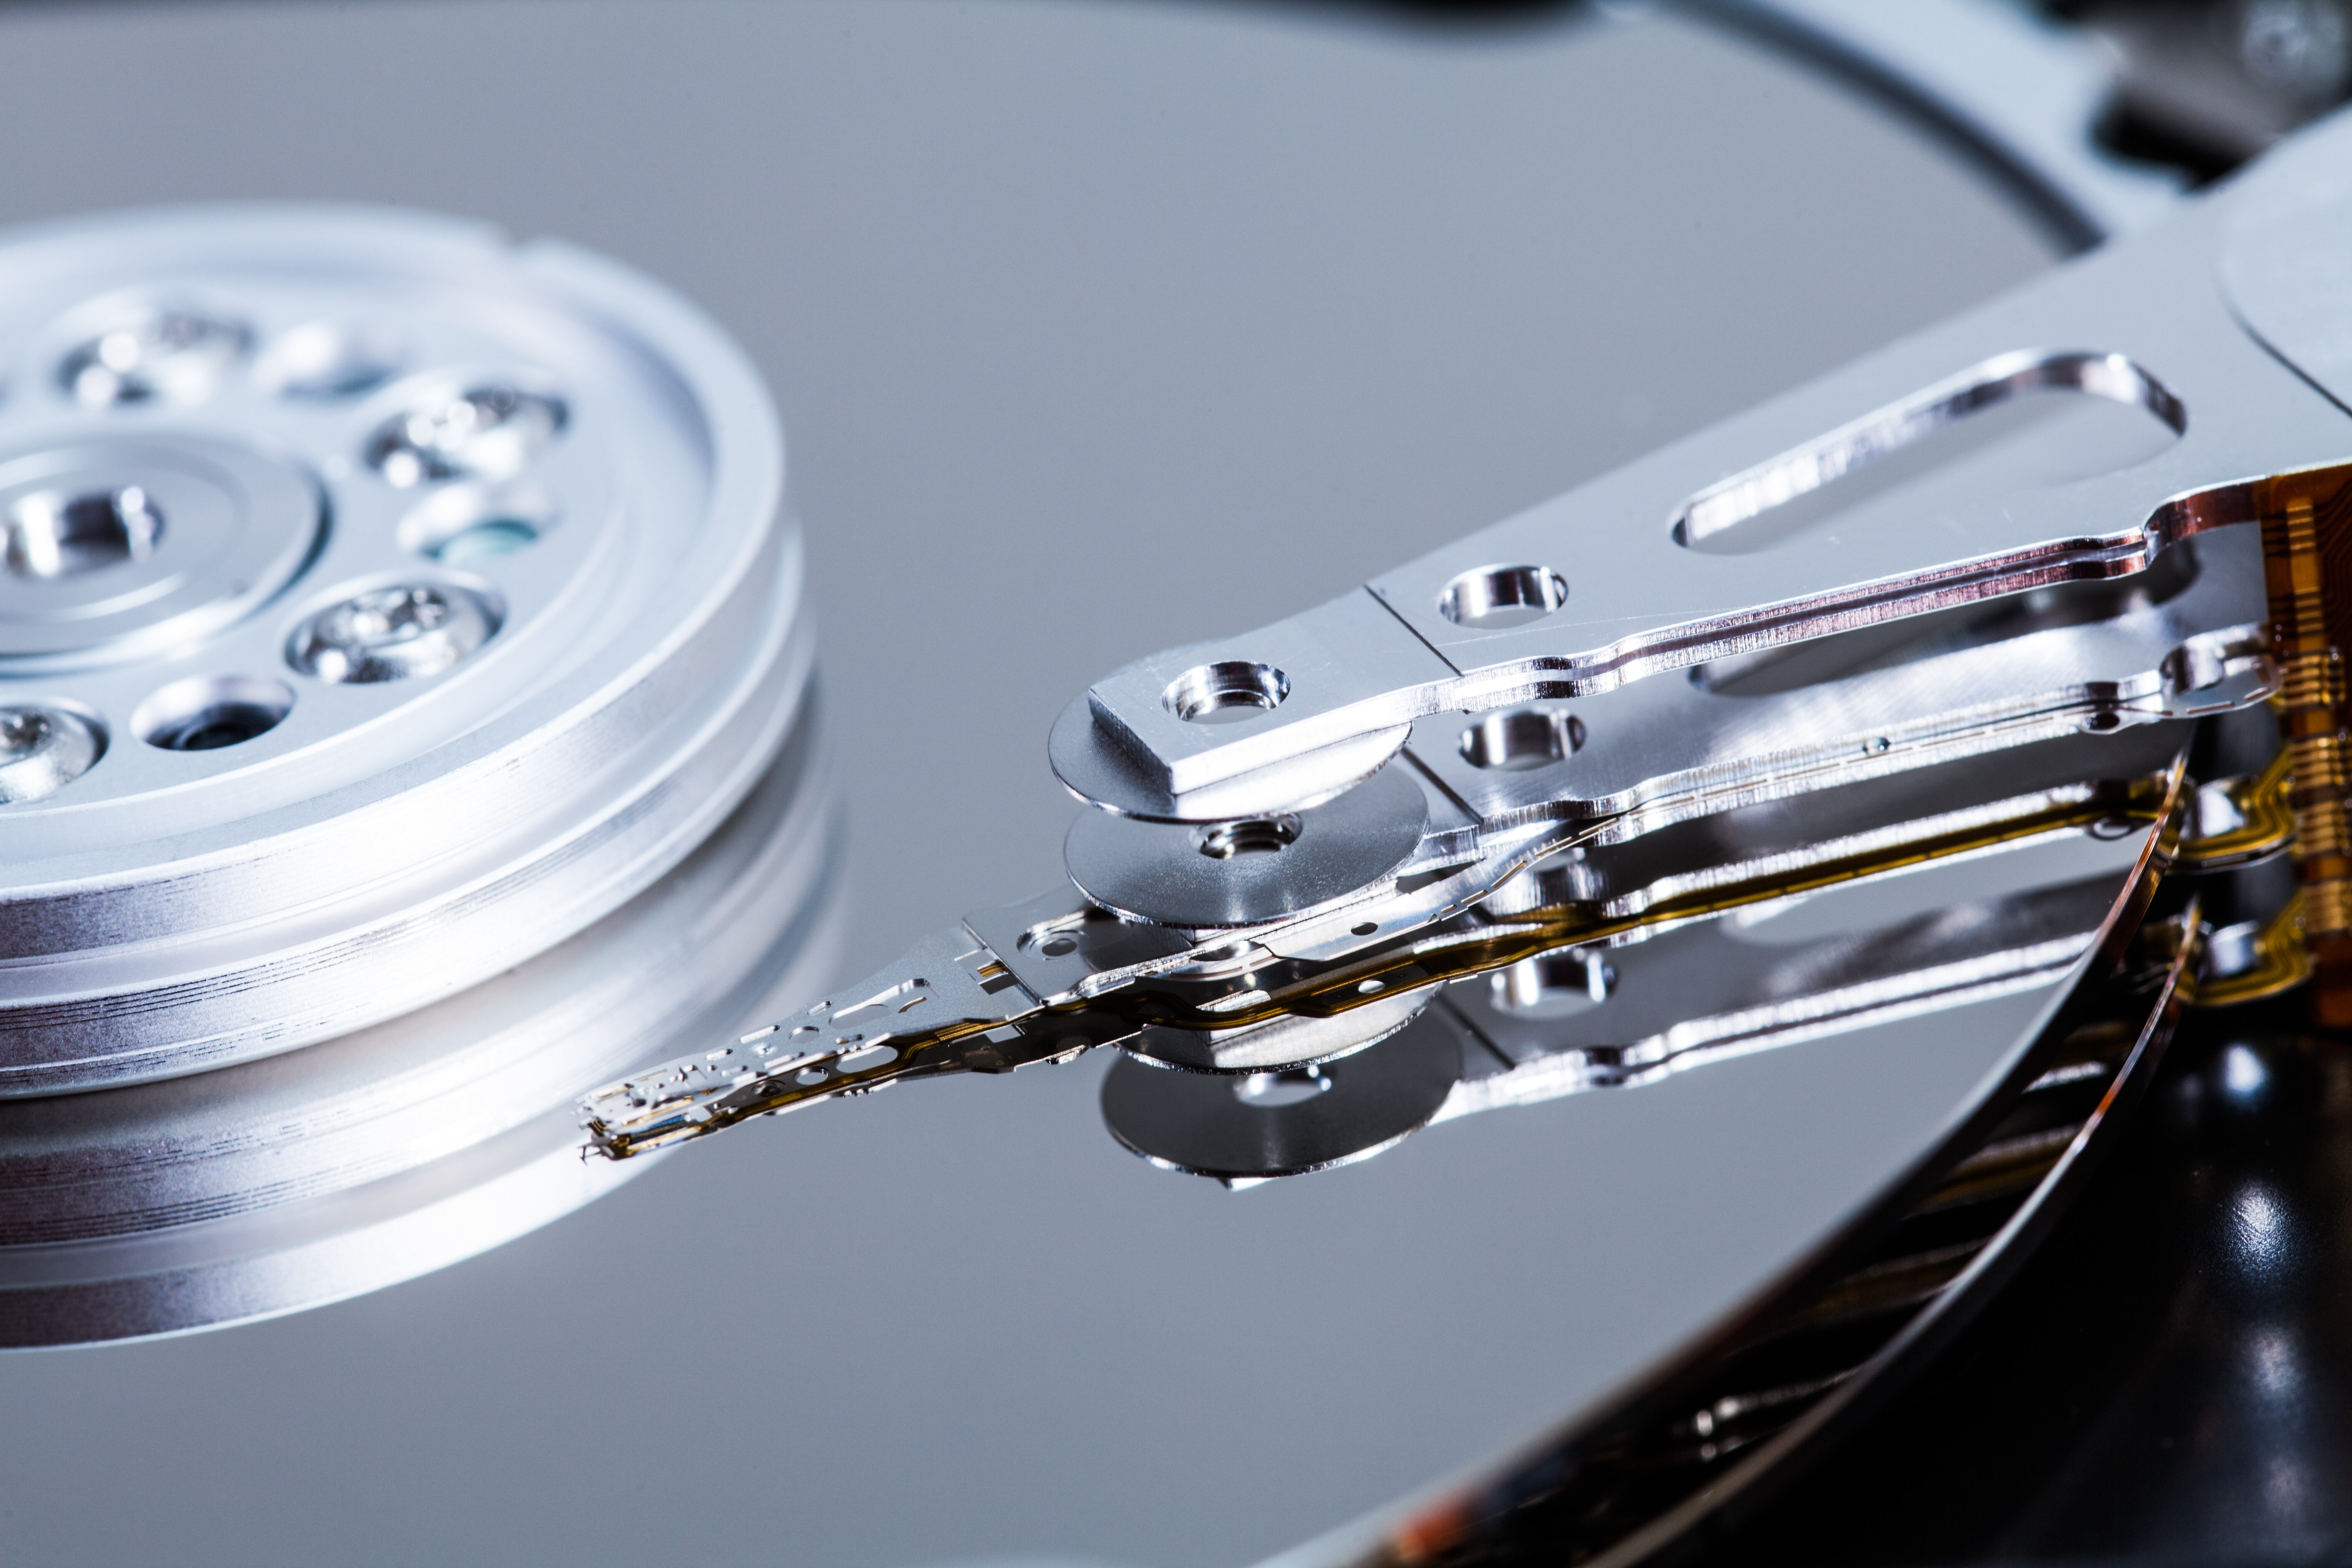 How to Fix External Hard Drive that Keeps Disconnecting